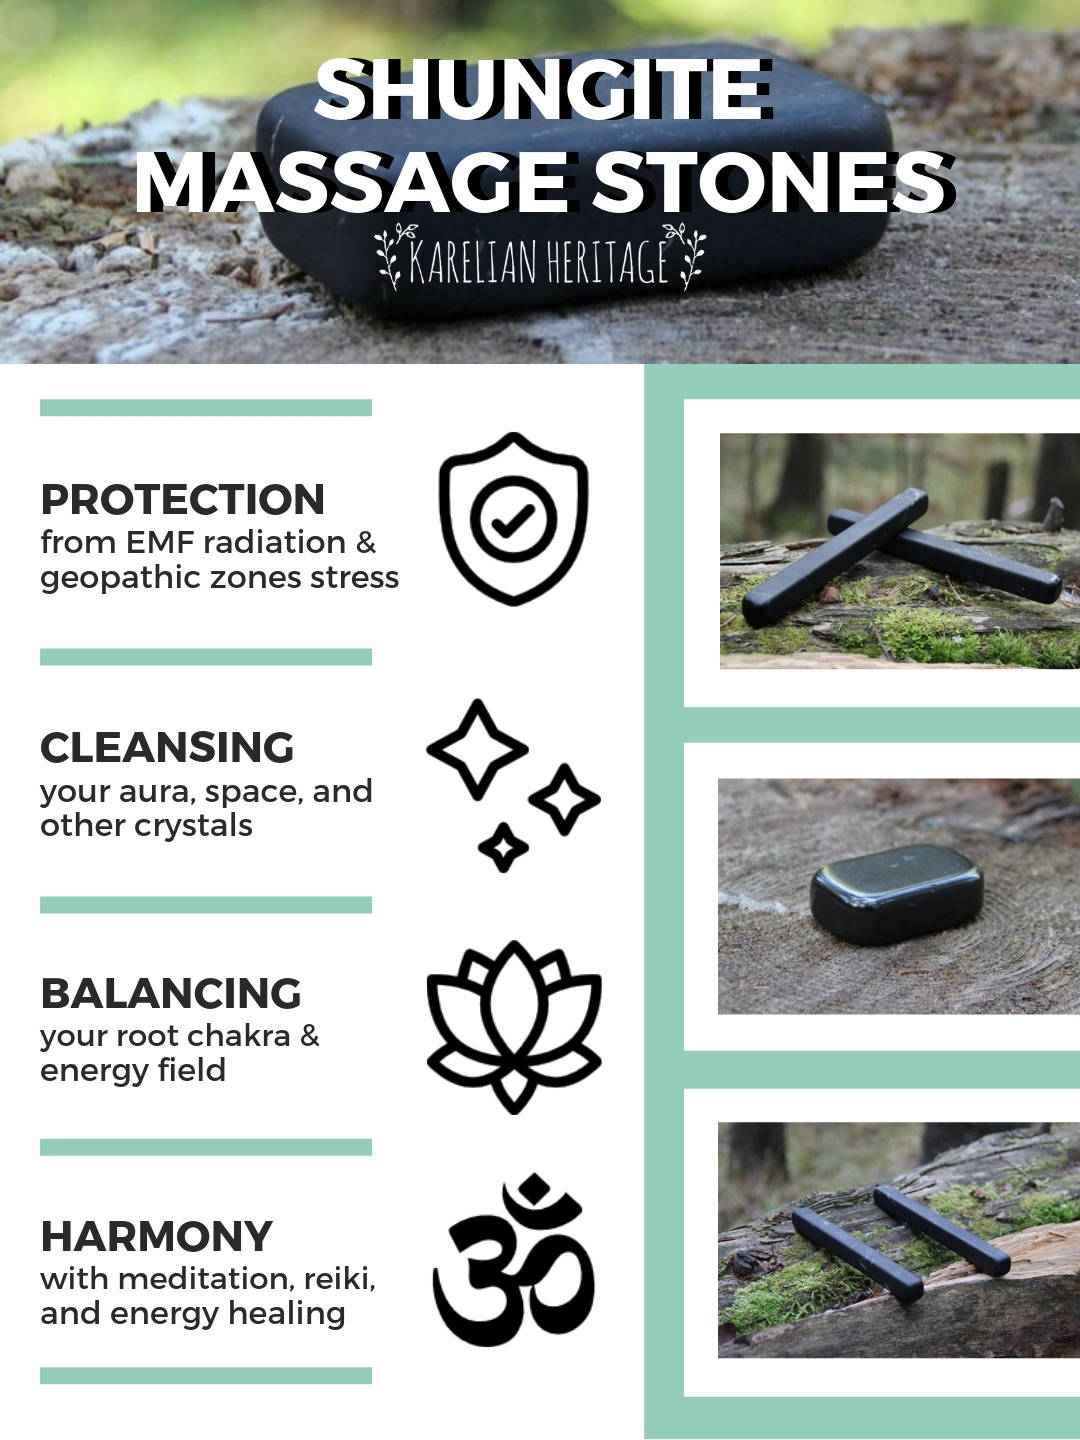 shungite-massage-stones